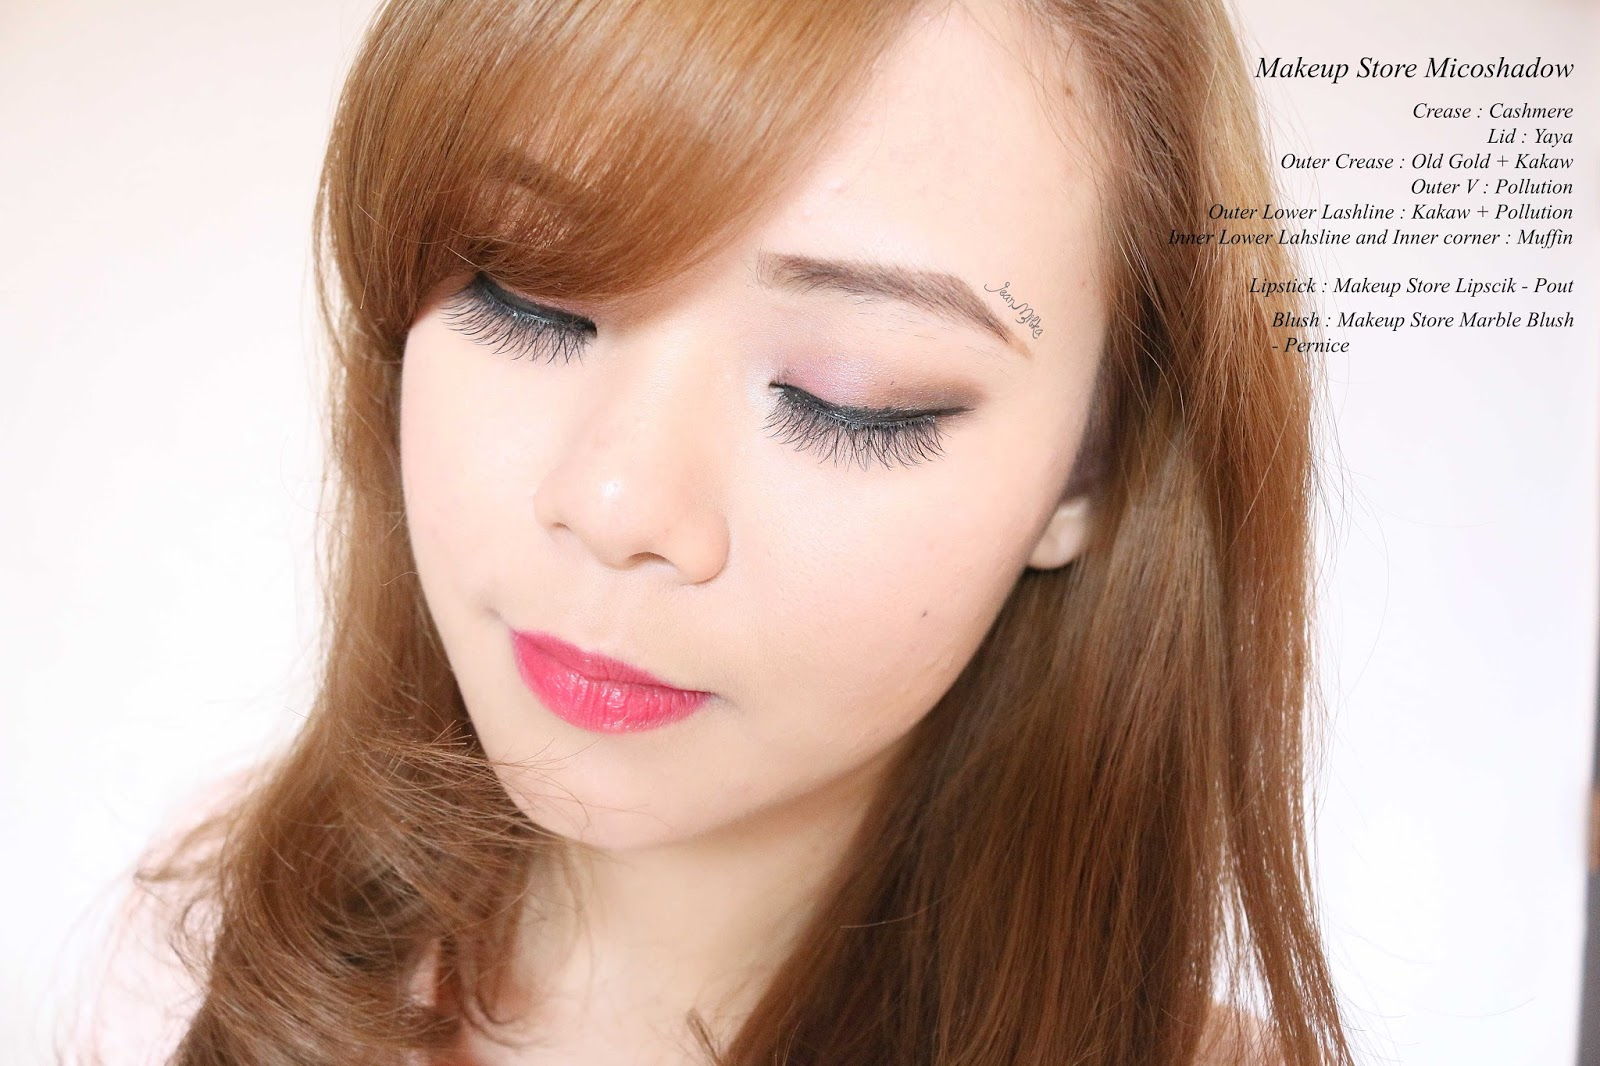 makeup, tutorial, makeup tutorial, bahasa, indonesia, asia, asian eyes, hooded eyes, natural, romantic makeup, date night